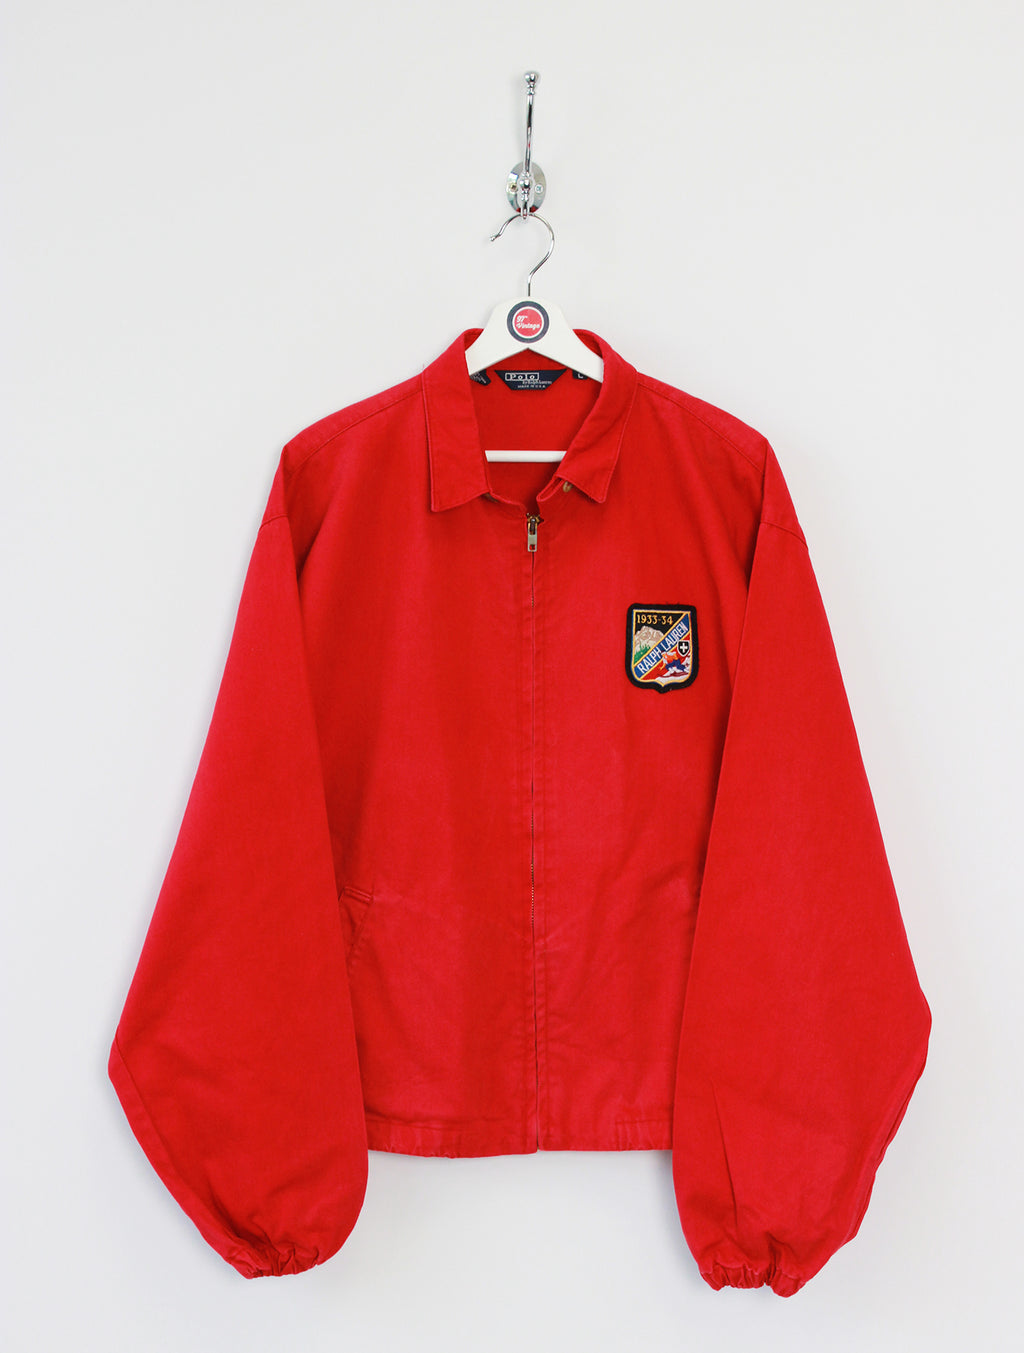 Ralph Lauren Polo Jacket (L)